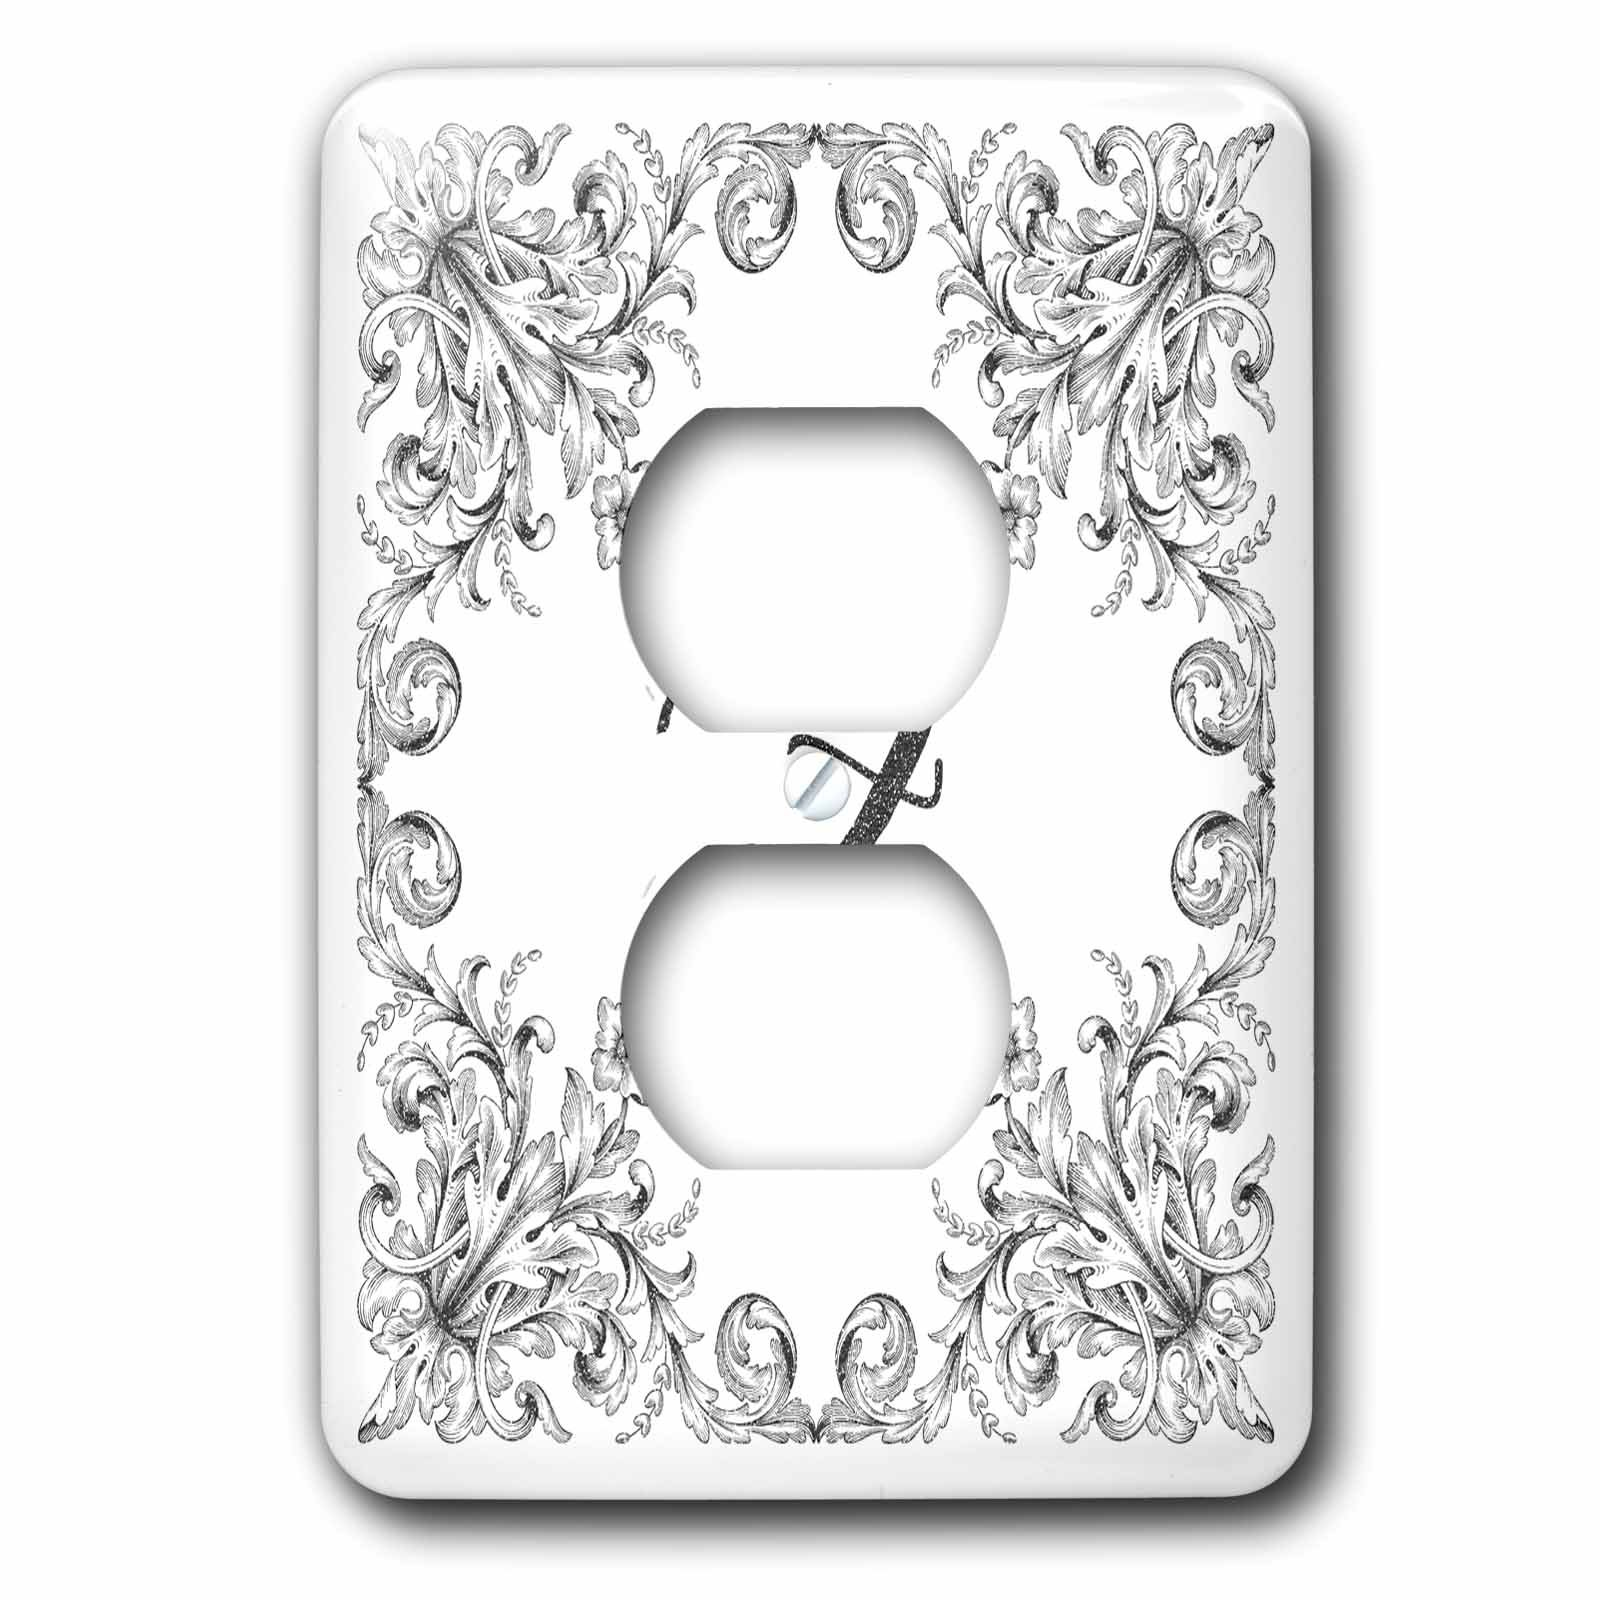 3dRose Uta Naumann Personal Monogram Initials - Letter Z Personal Luxury Vintage Glitter Monogram-Personalized Initial - Light Switch Covers - 2 plug outlet cover (lsp_275326_6)